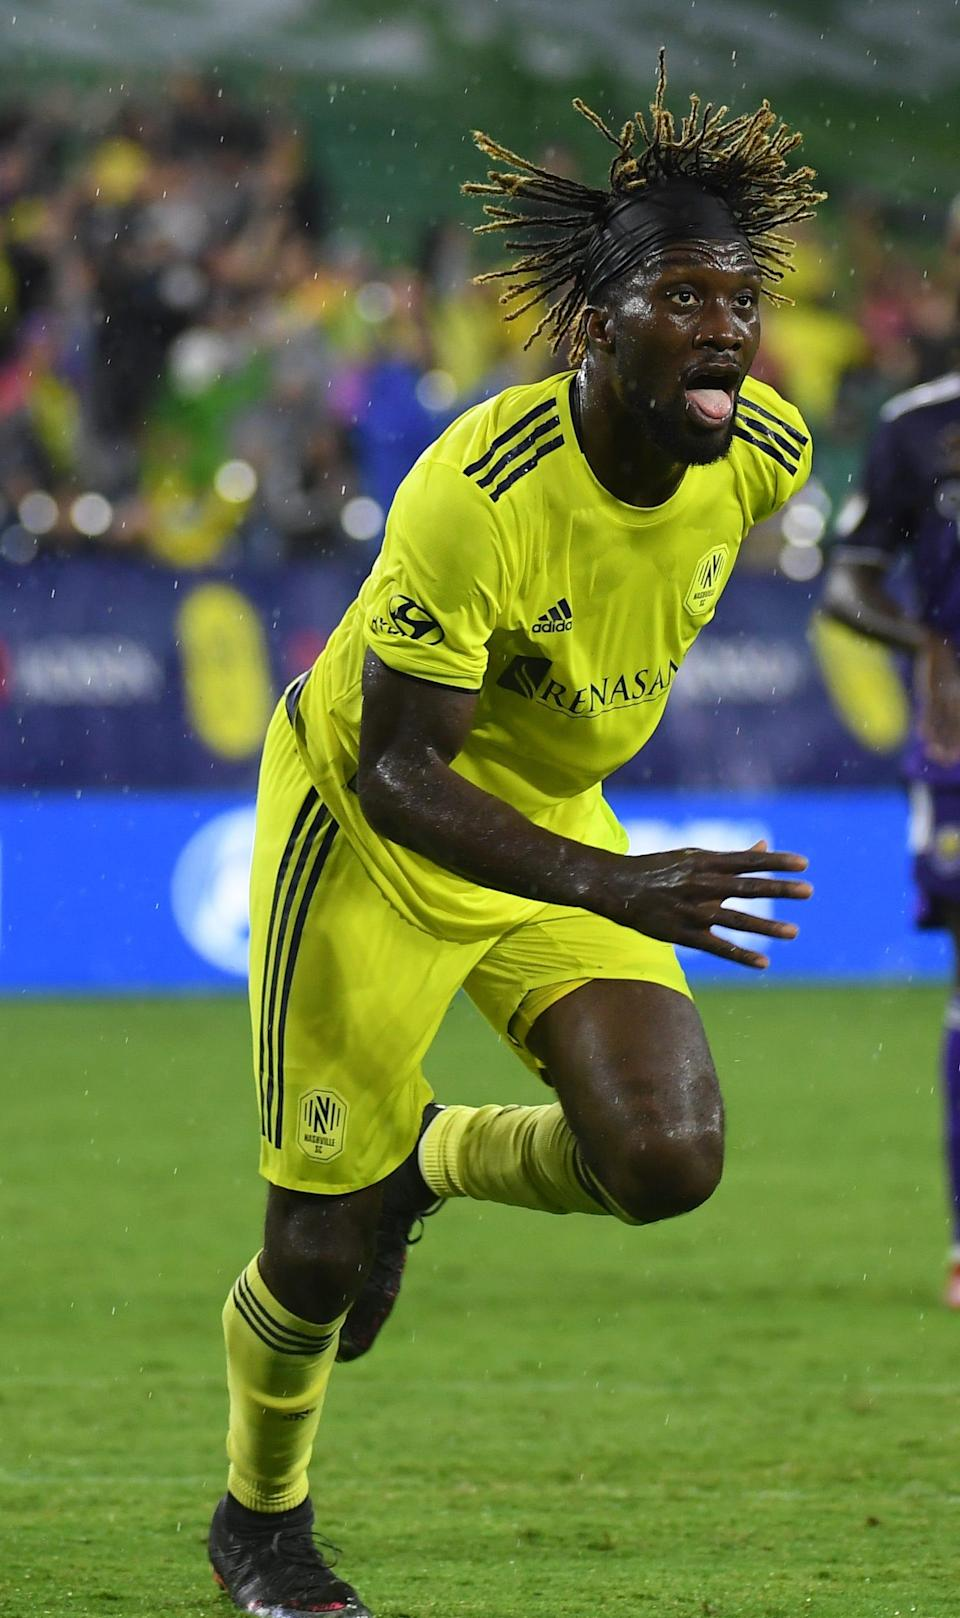 CJ Sapong's recent run of scoring goals has kept Nashville SC in the thick of the Eastern Conference playoff race.